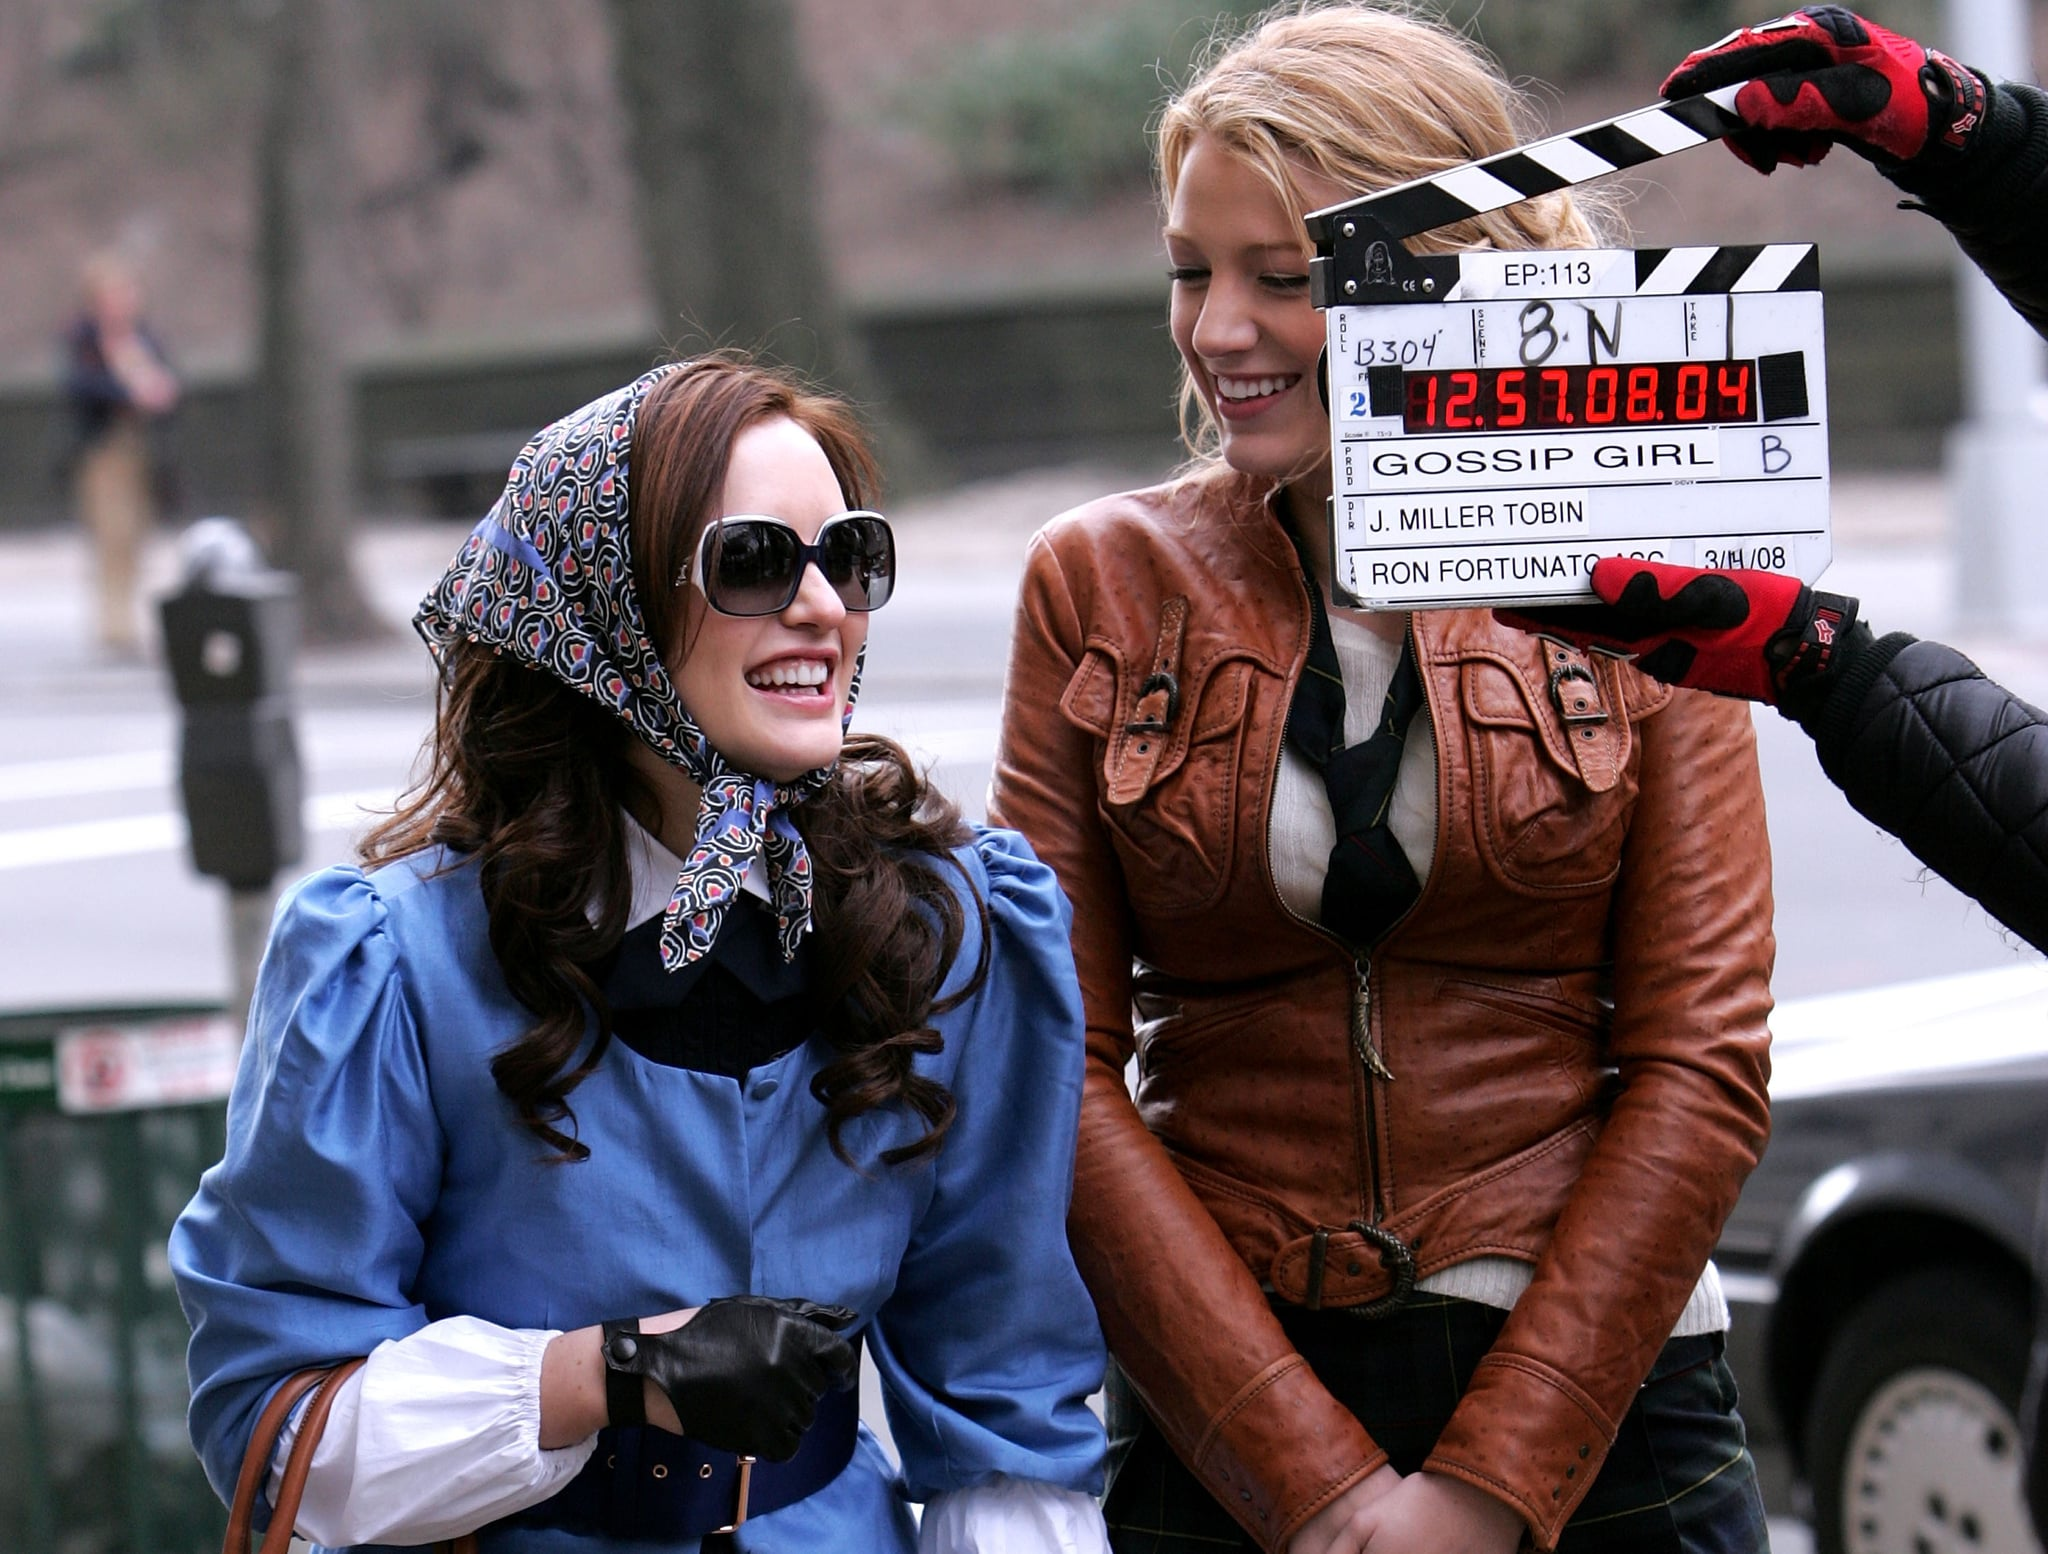 Despite wearing a disguise, Leighton Meester sported a bright smile that gave her away during a March 2008 shoot in NYC.